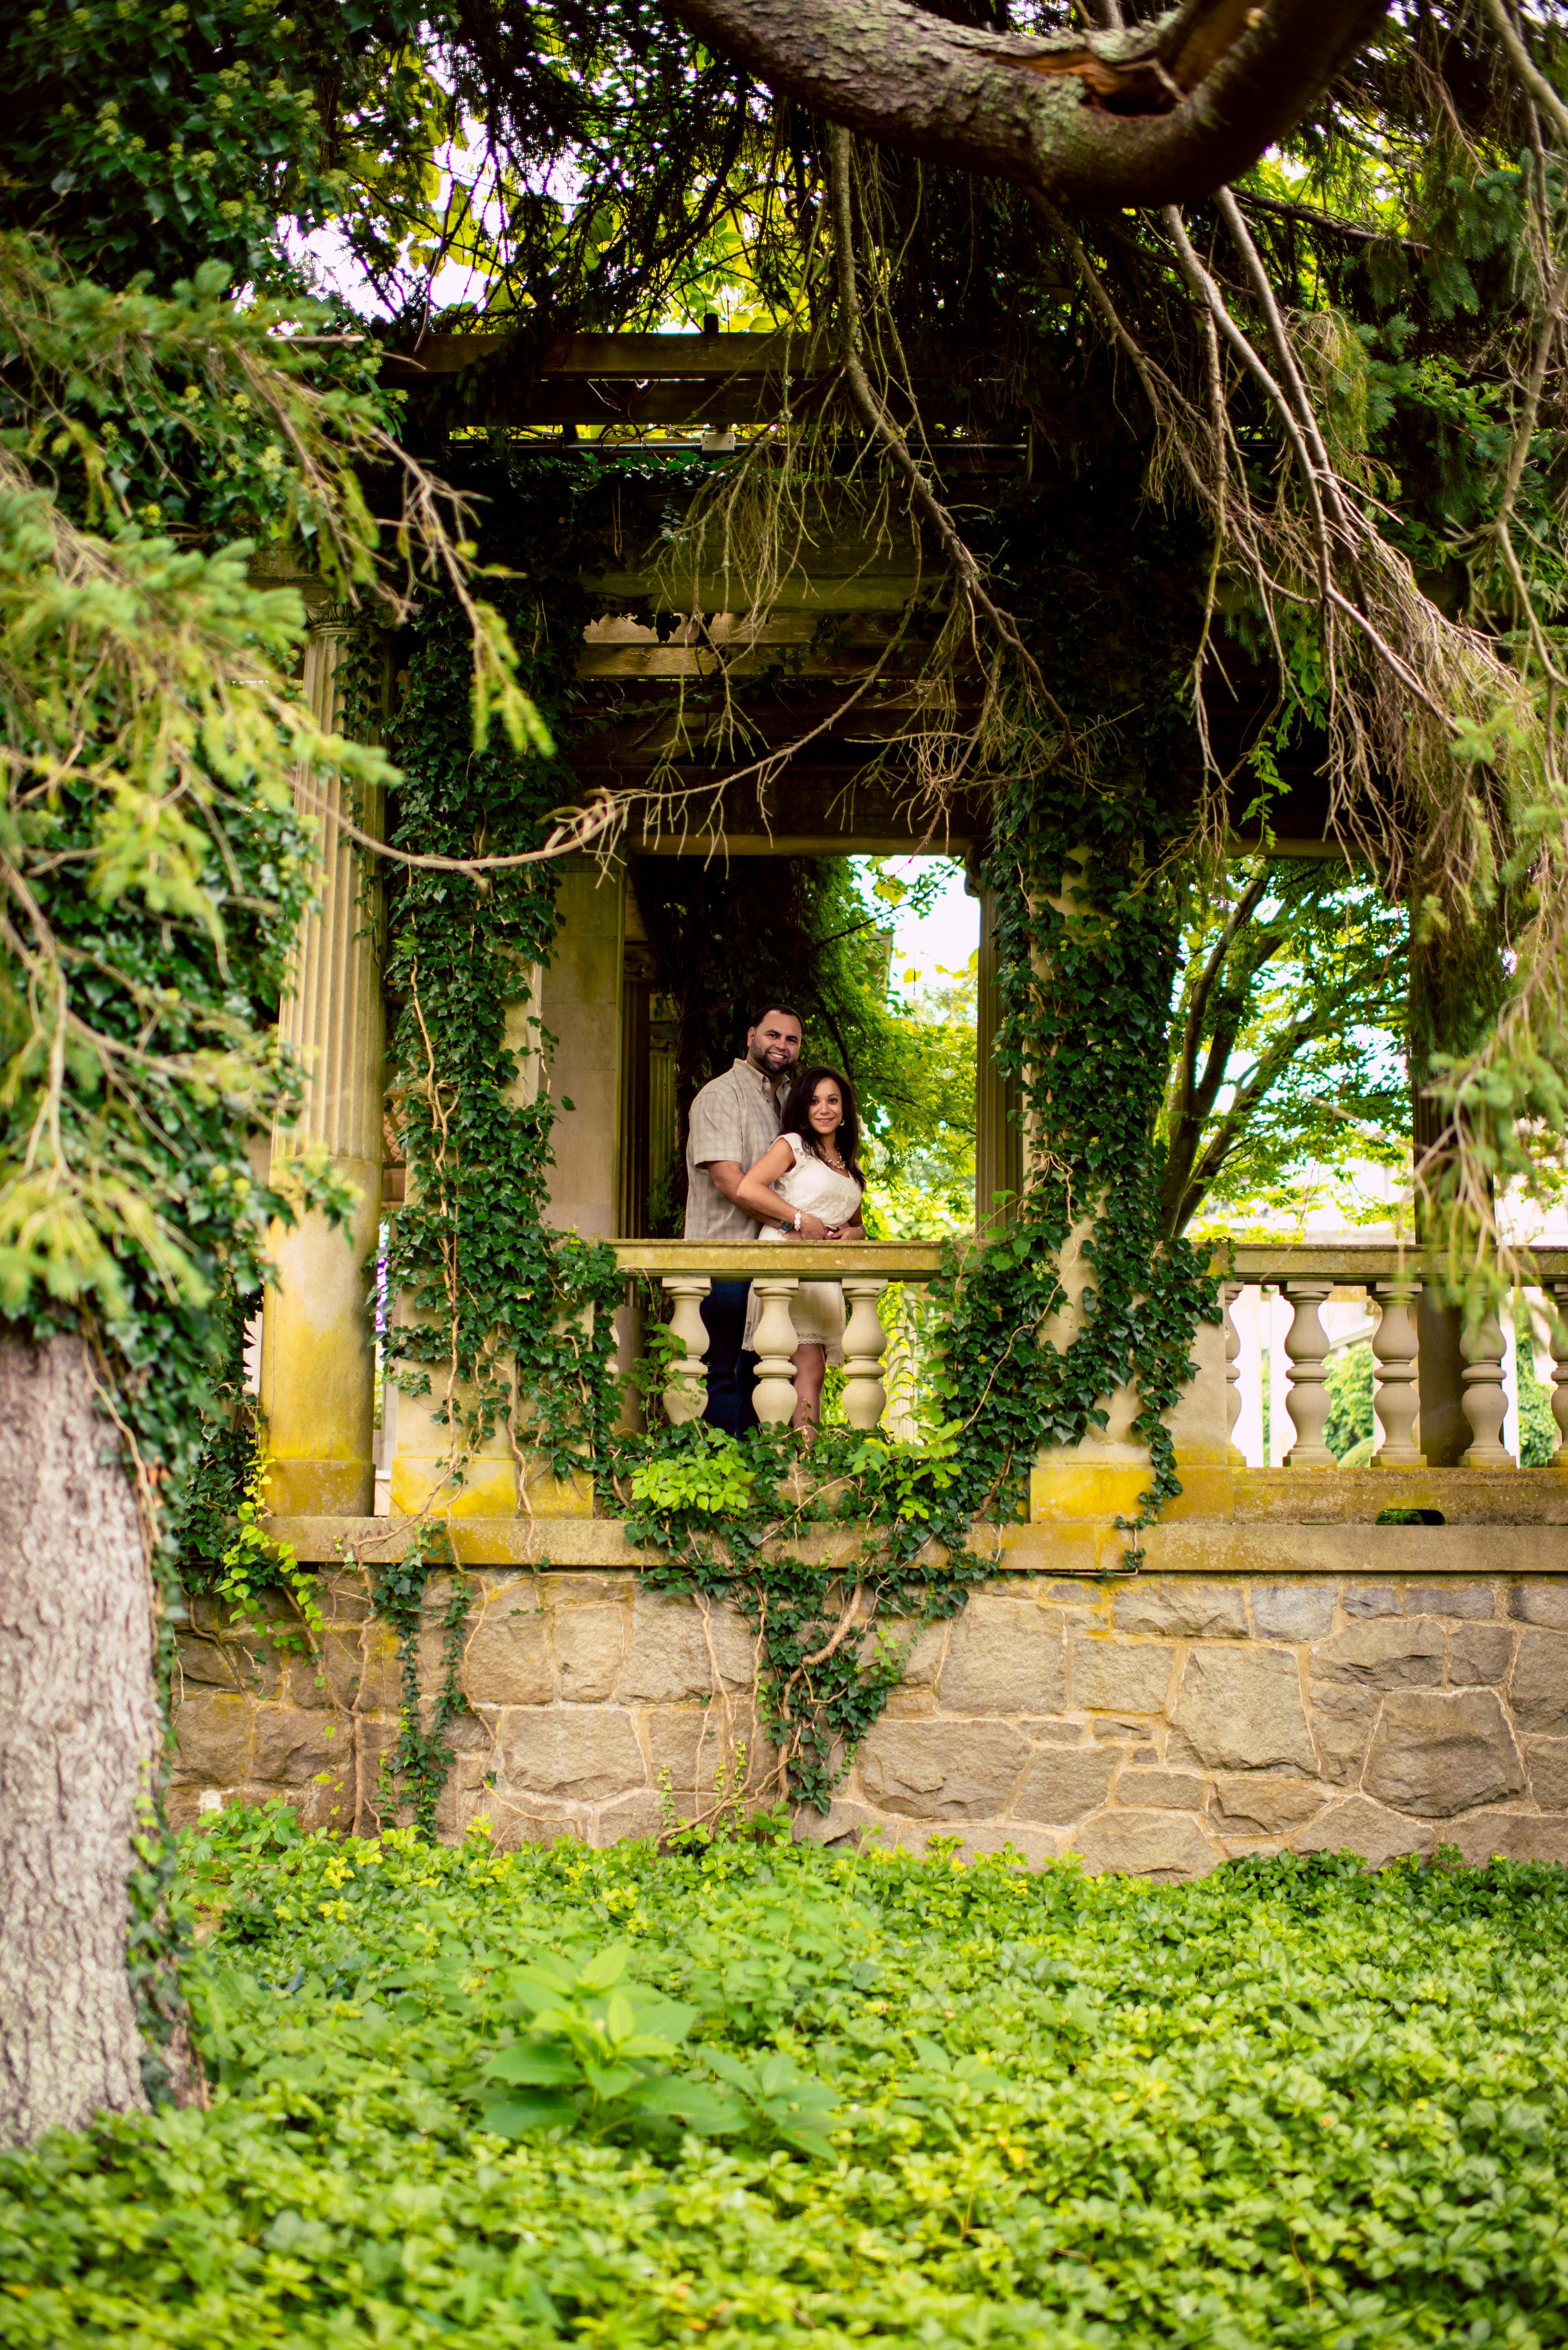 Another #tremendous, #romantic image of the #engagedcouple. We love the #rusticcharm + #ageold #romance of it all. ::Celina + Jonathan's stunning engagement session in New England:: #gazebo #vines #romanticimages #weddingphotography #photography